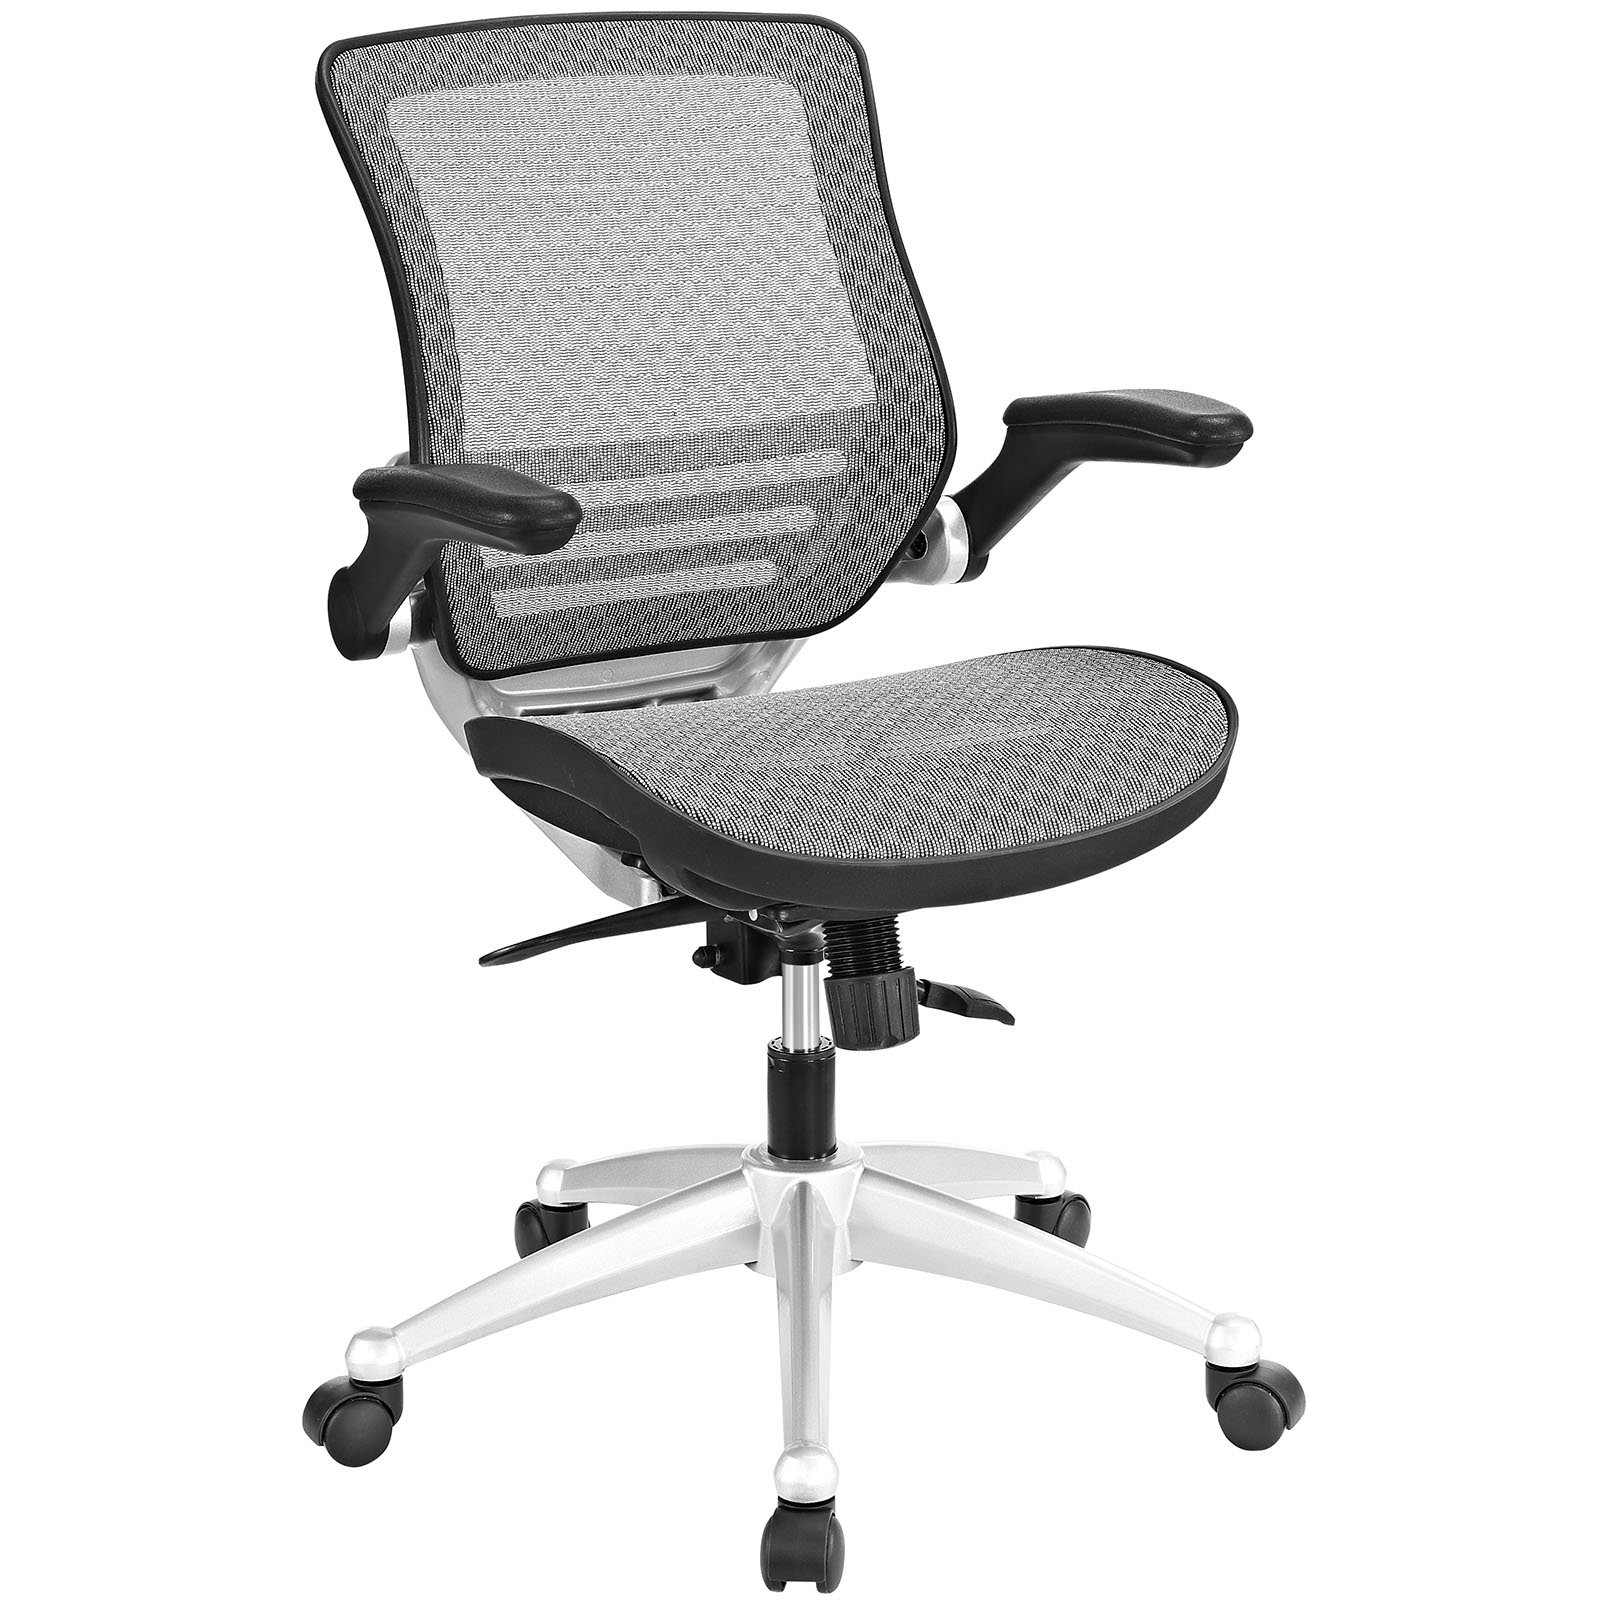 Modway Edge All Mesh Office Chair With Flip-Up Arms In Gray - Ergonomic Desk And Computer Chair by Modway